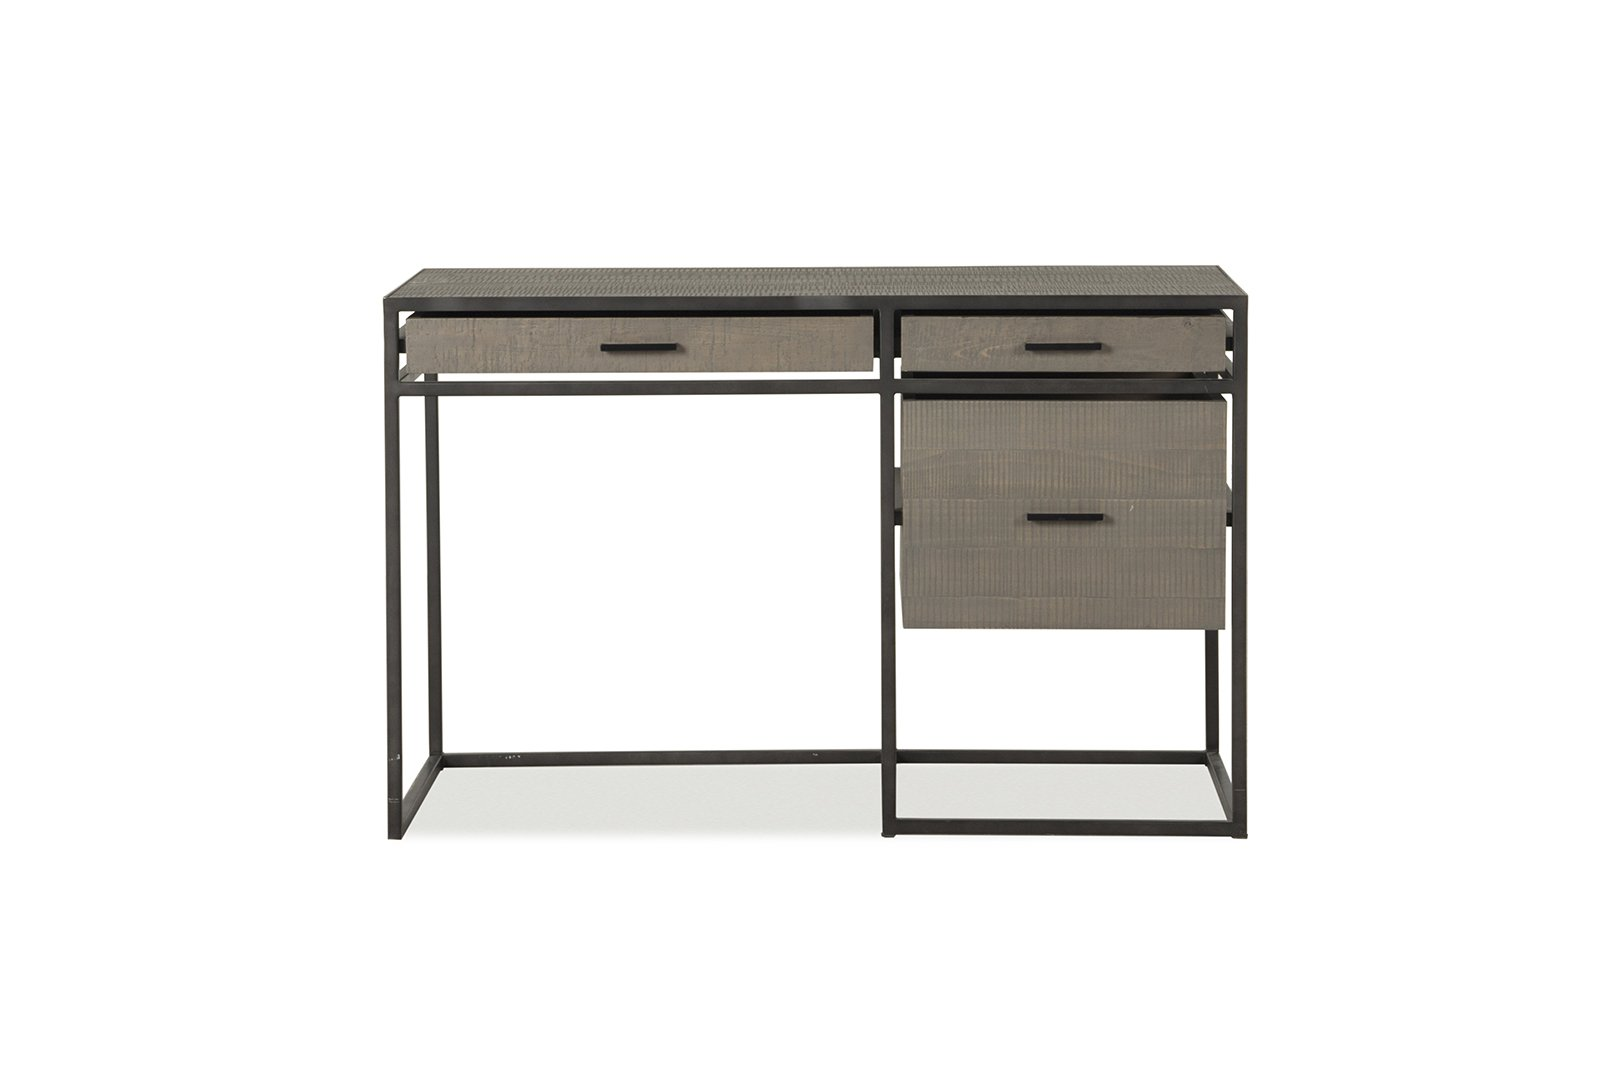 Flamant Grenoble Desk, Drifted Pine by Flamant